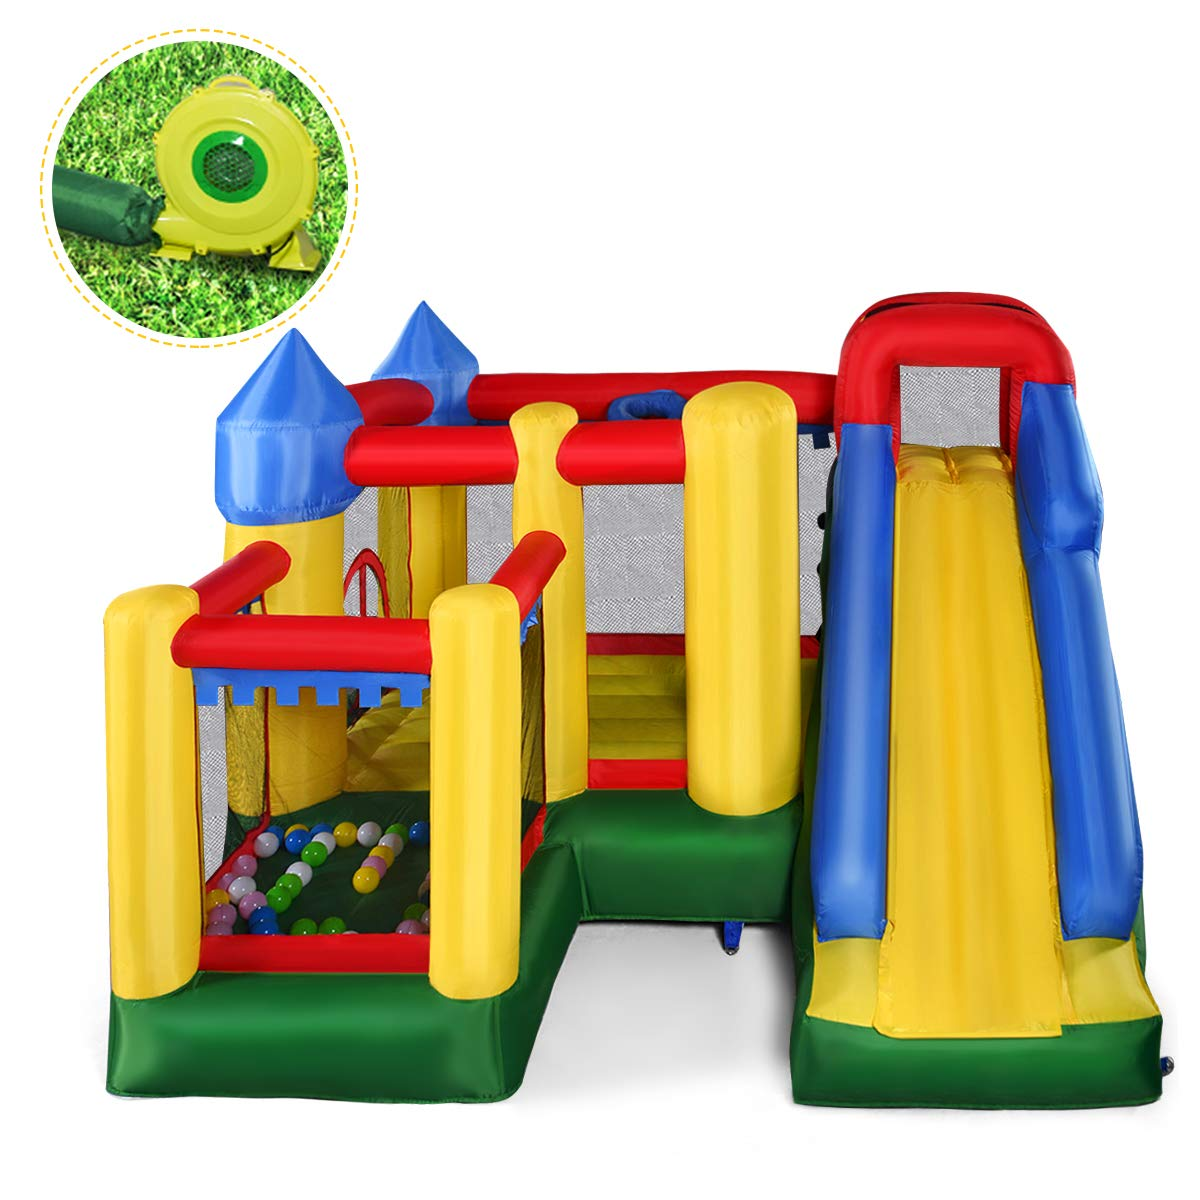 Giantex Mighty Inflatable Bounce House Castle Jumper Moonwalk Bouncer w/ 680W Blower by Giantex